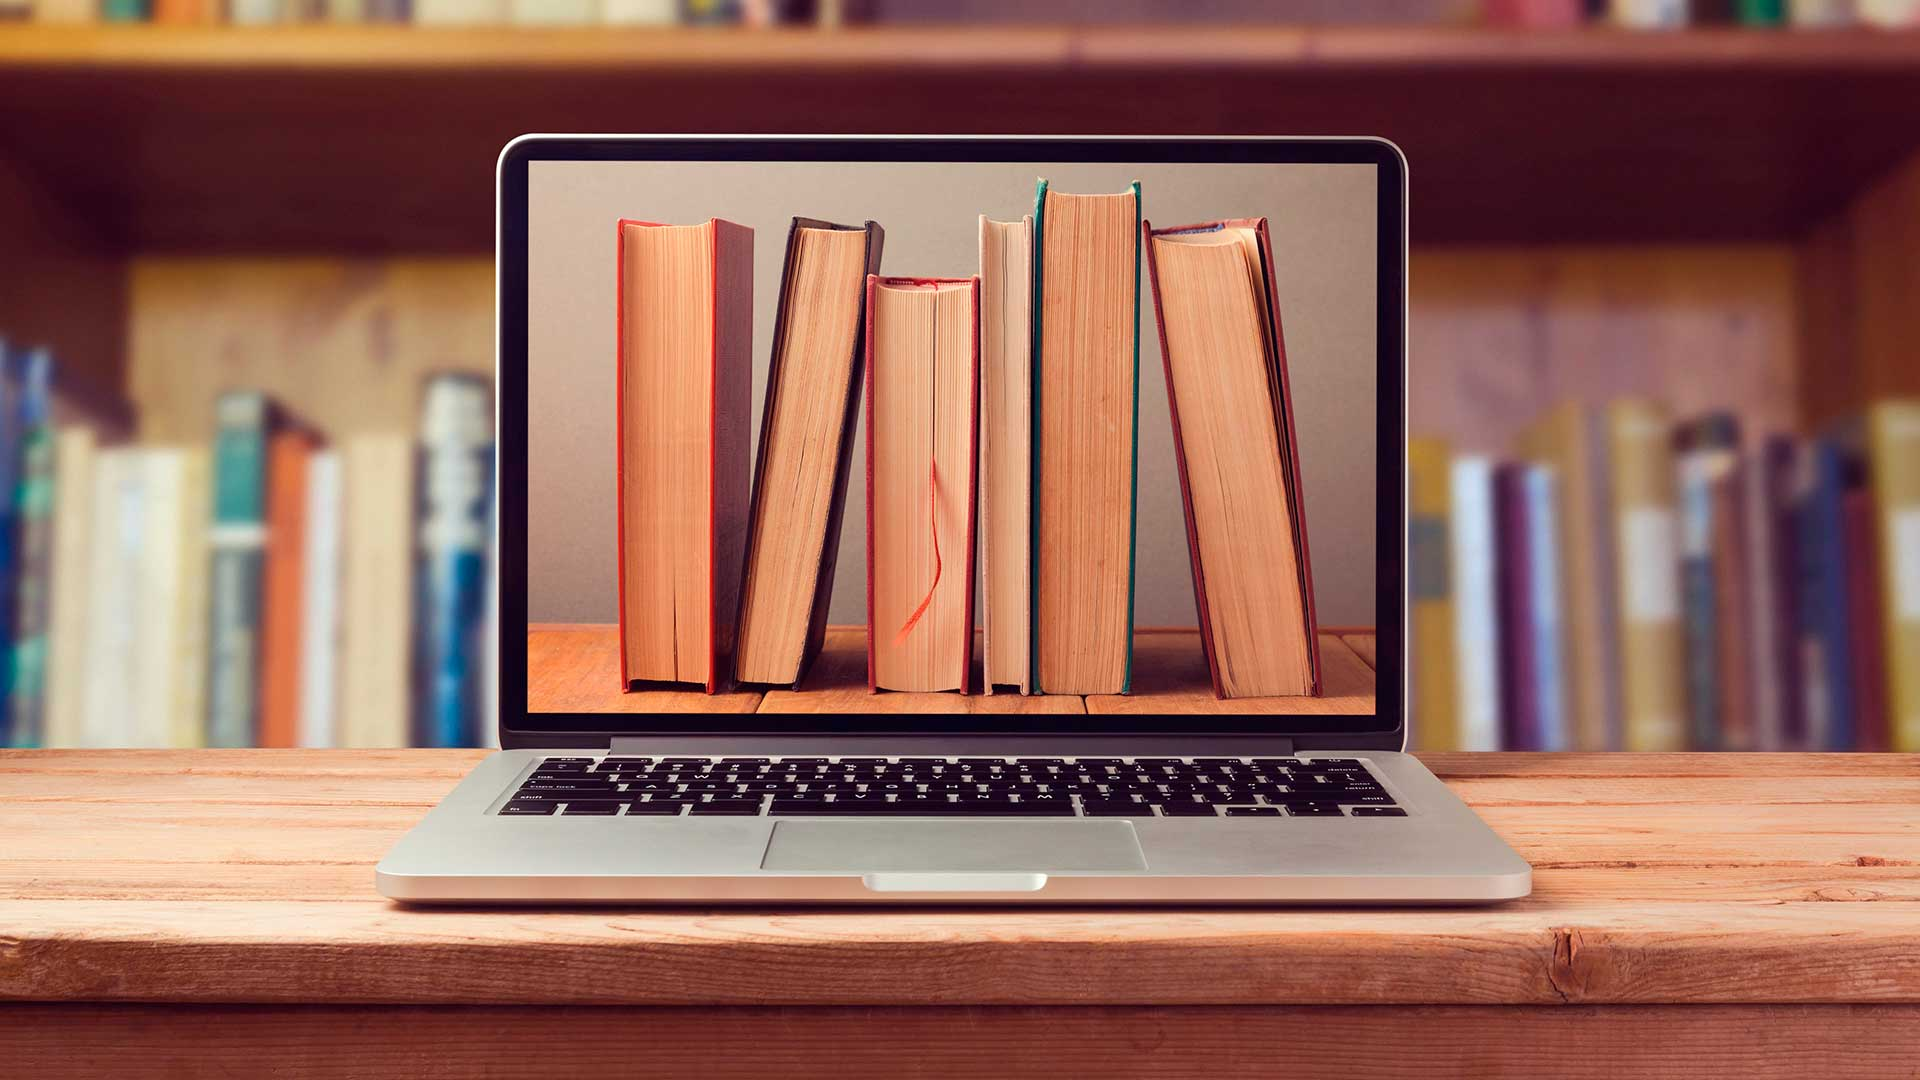 Sitios Para Comprar Libros Por Internet 7 Libros De Marketing Imprescindibles Waarket